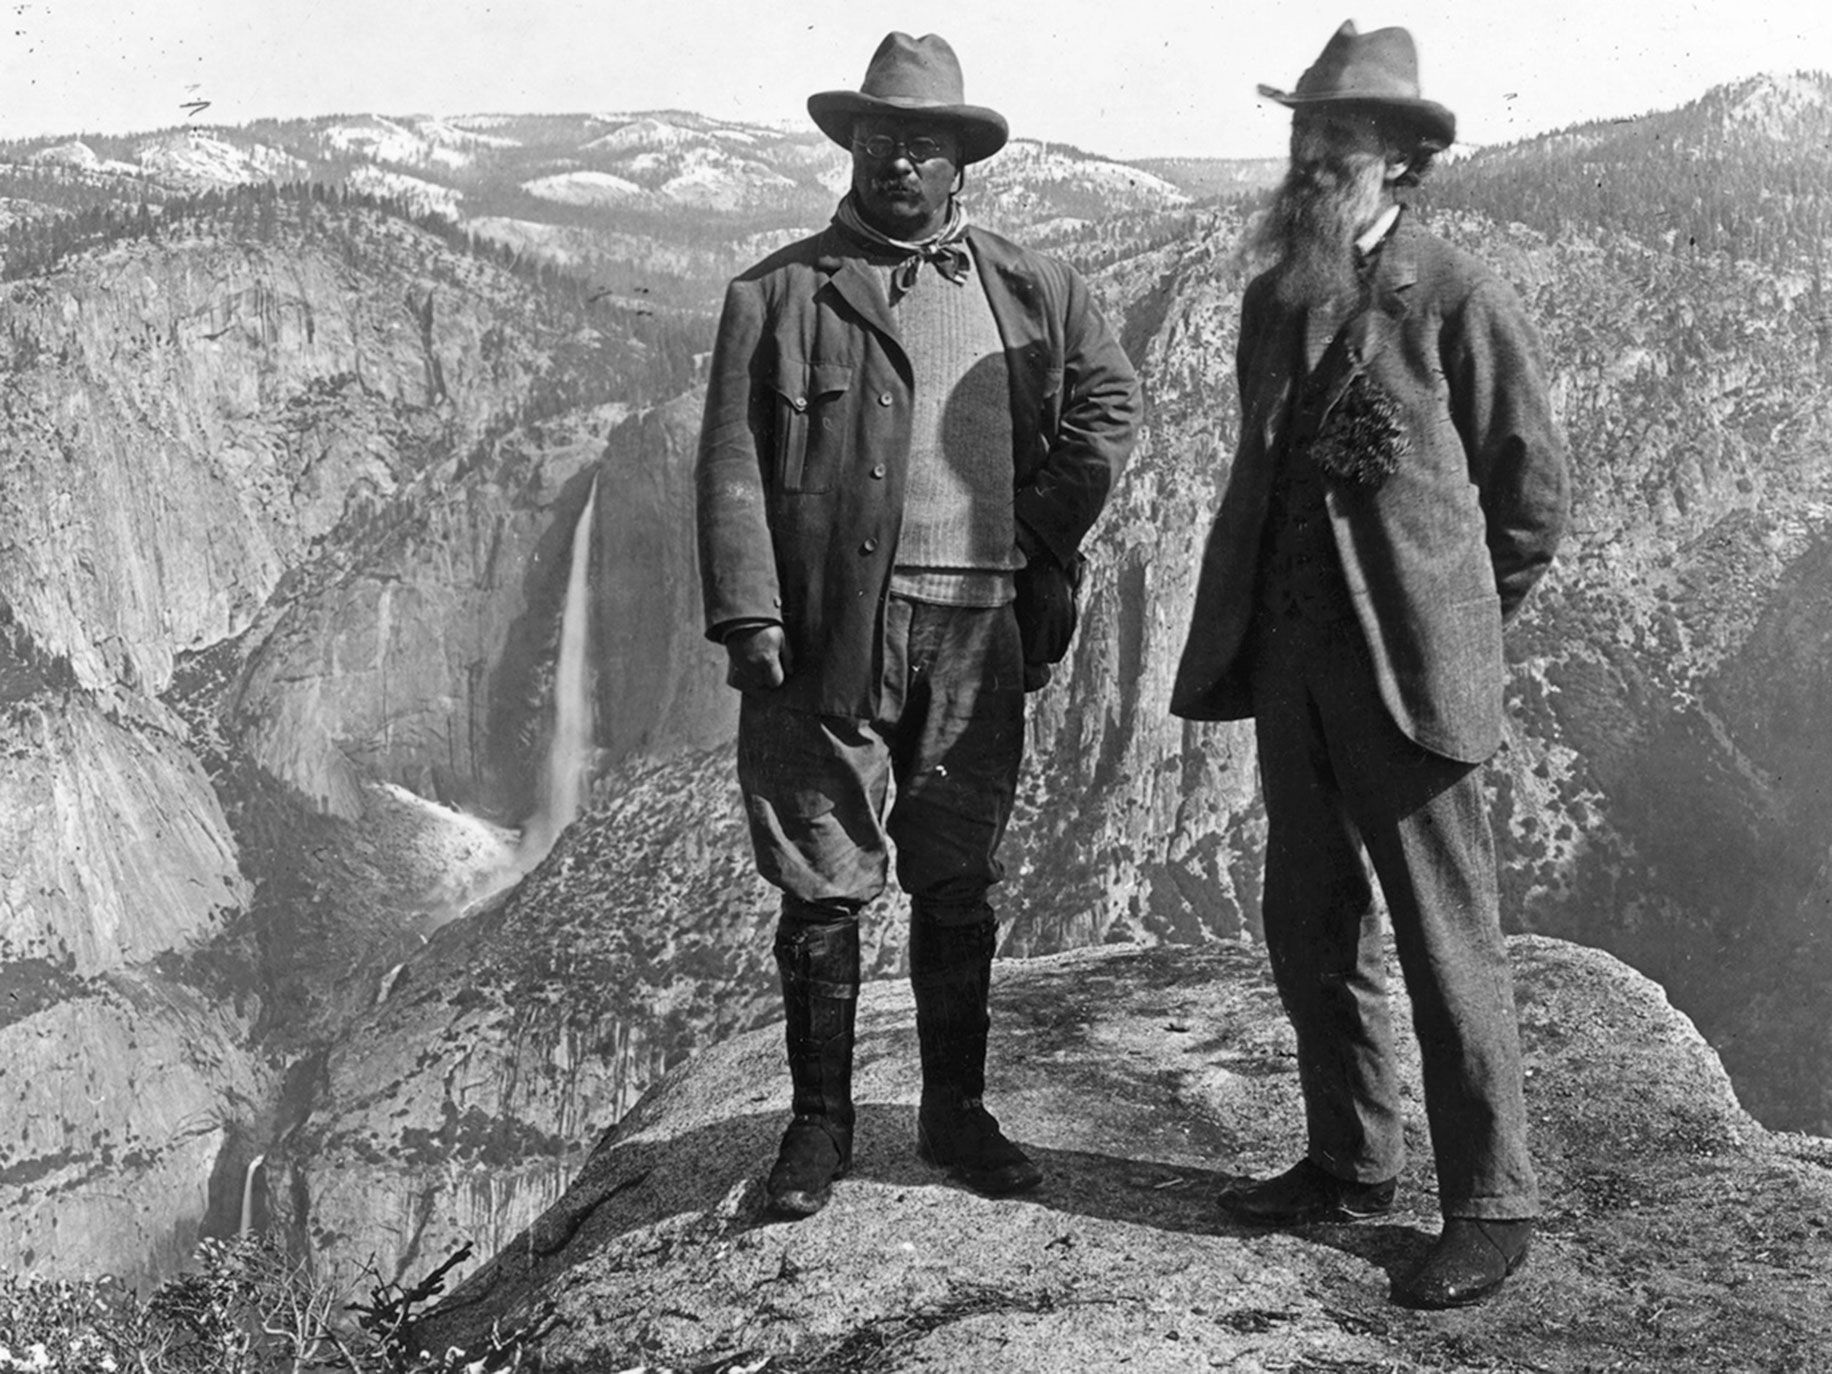 Conservationist John Muir's camping trip to Yosemite Valley with President Theodore Roosevelt in May 1903 led to Yosemite being designated as a National Park.